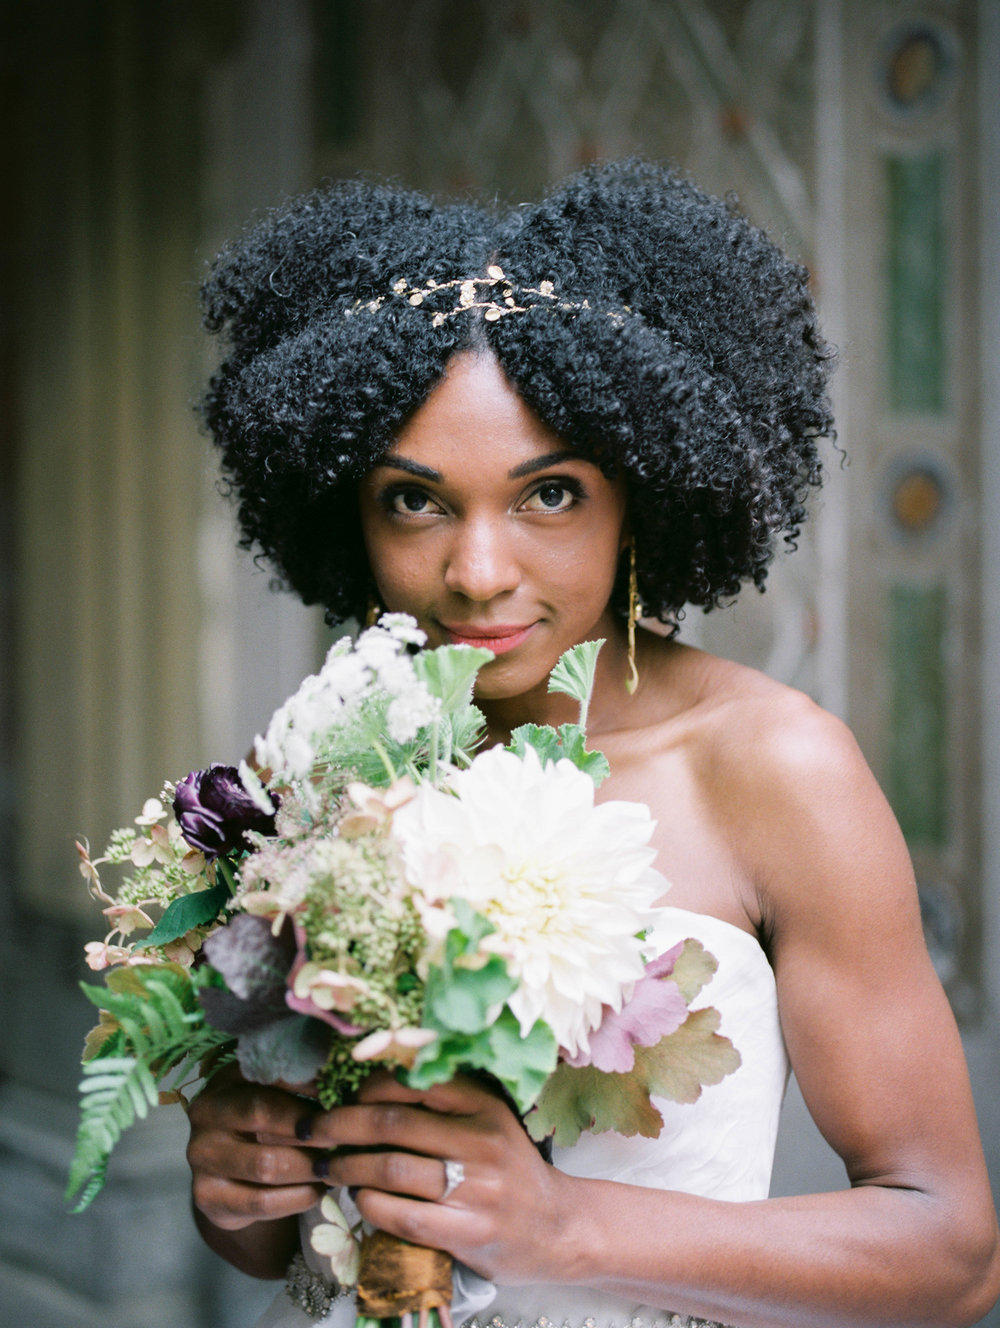 NYC Wedding Inspiration - www.jleephotos.com